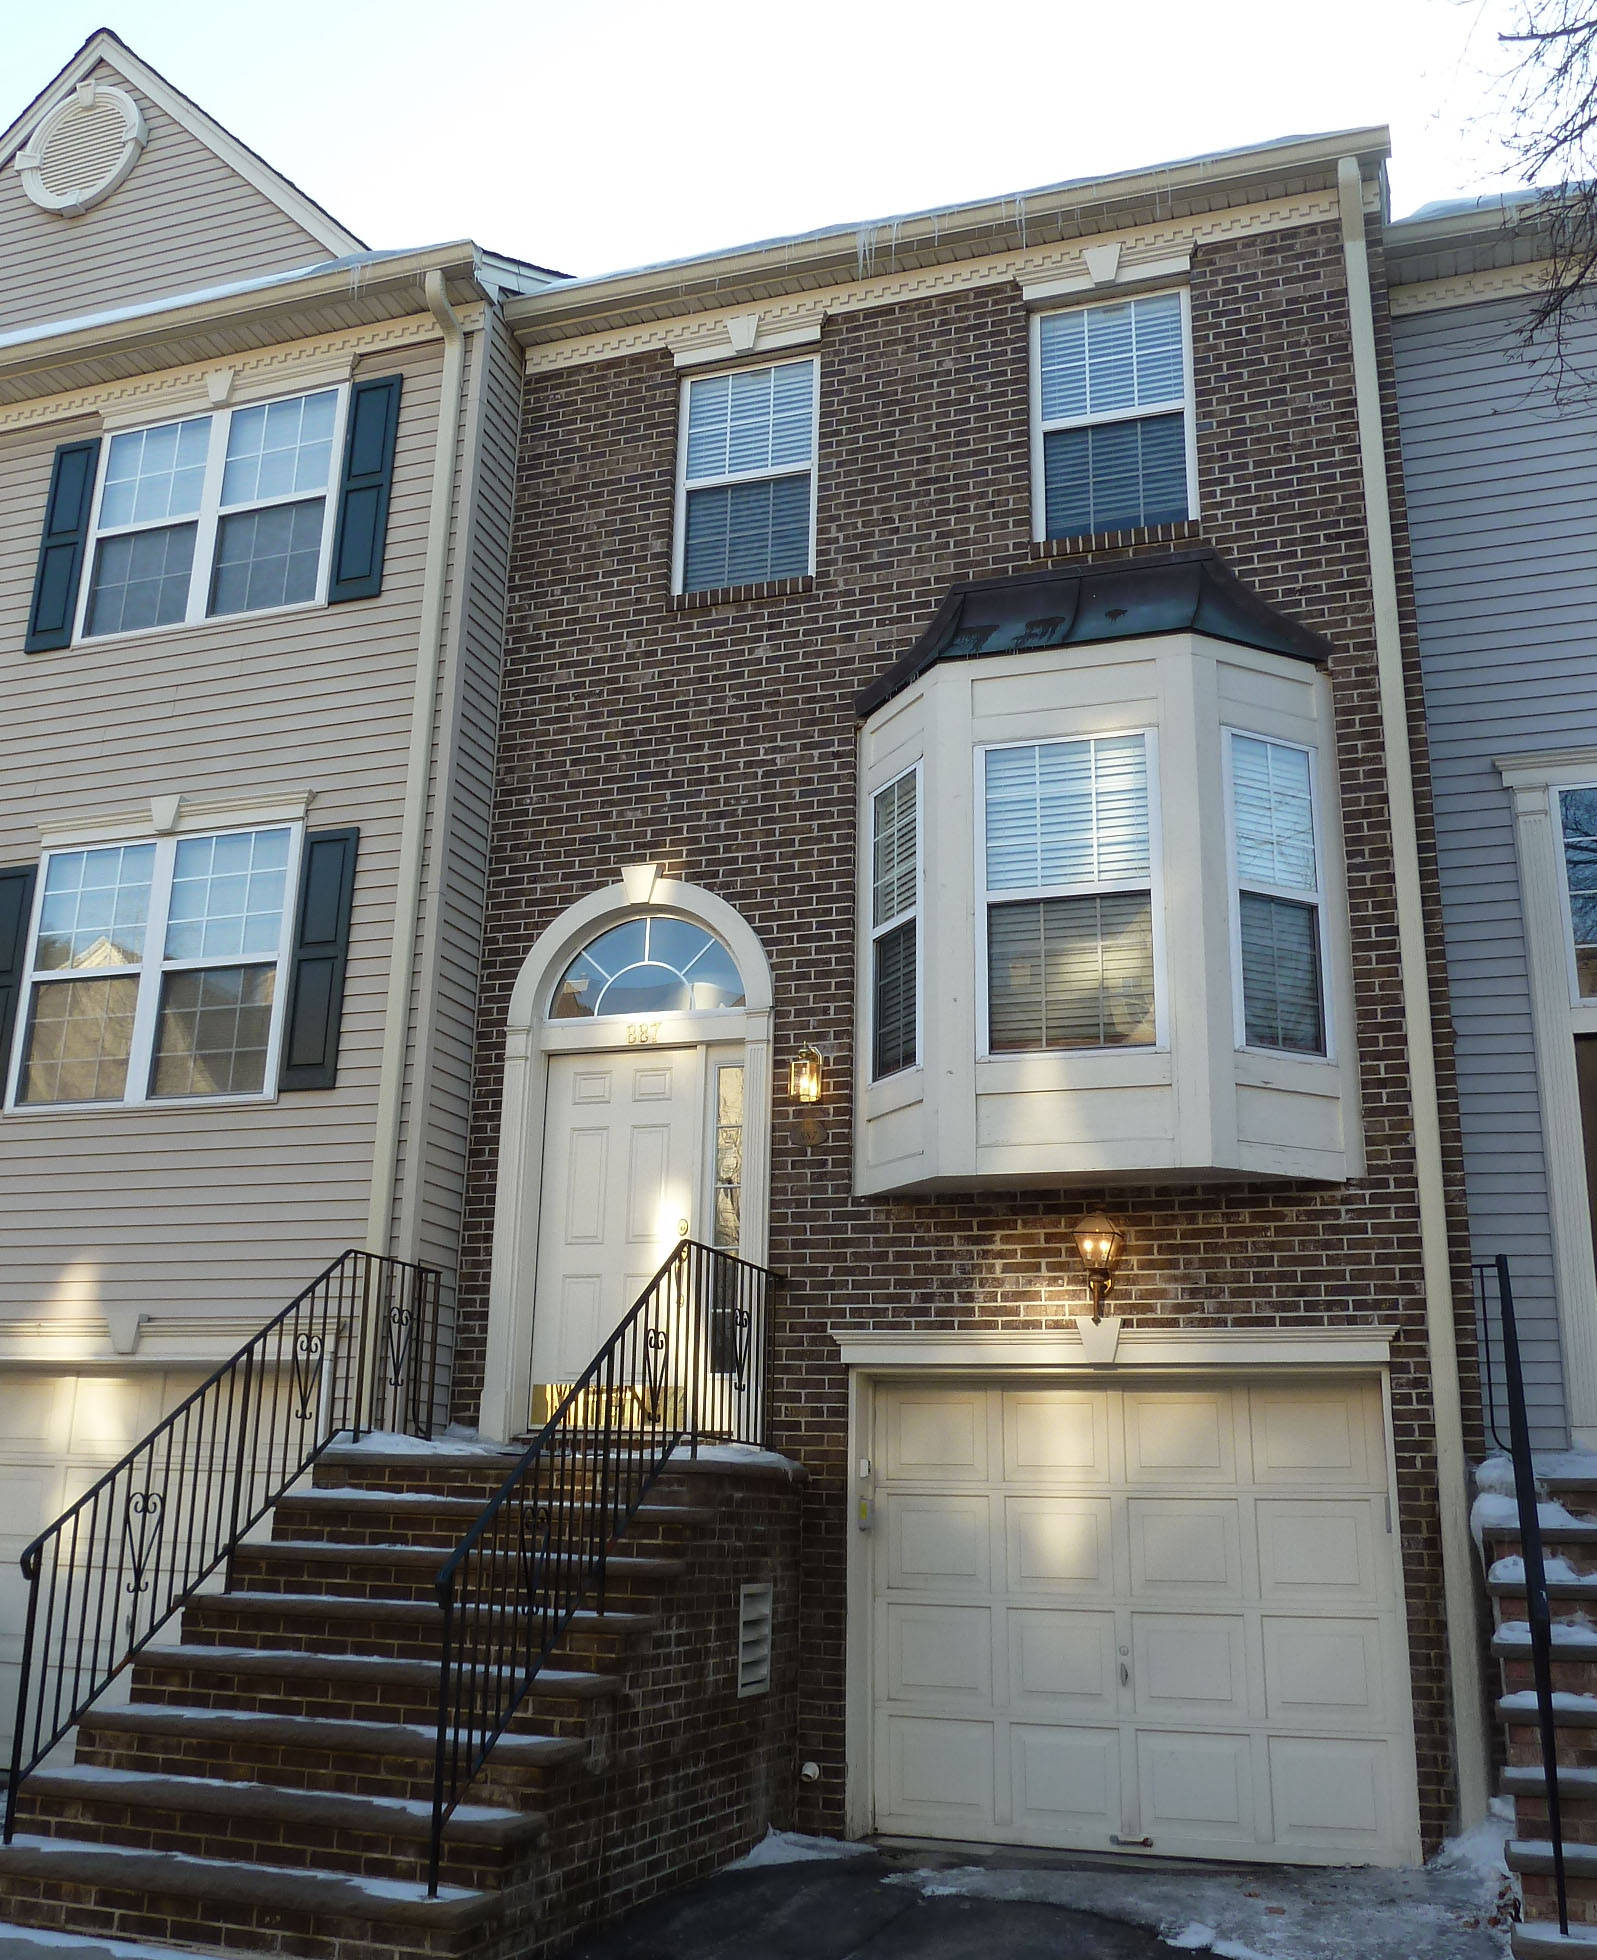 cambridge heights townhouse in ramsey just sold by jean bow window pictures bow window pictures pin pinterest